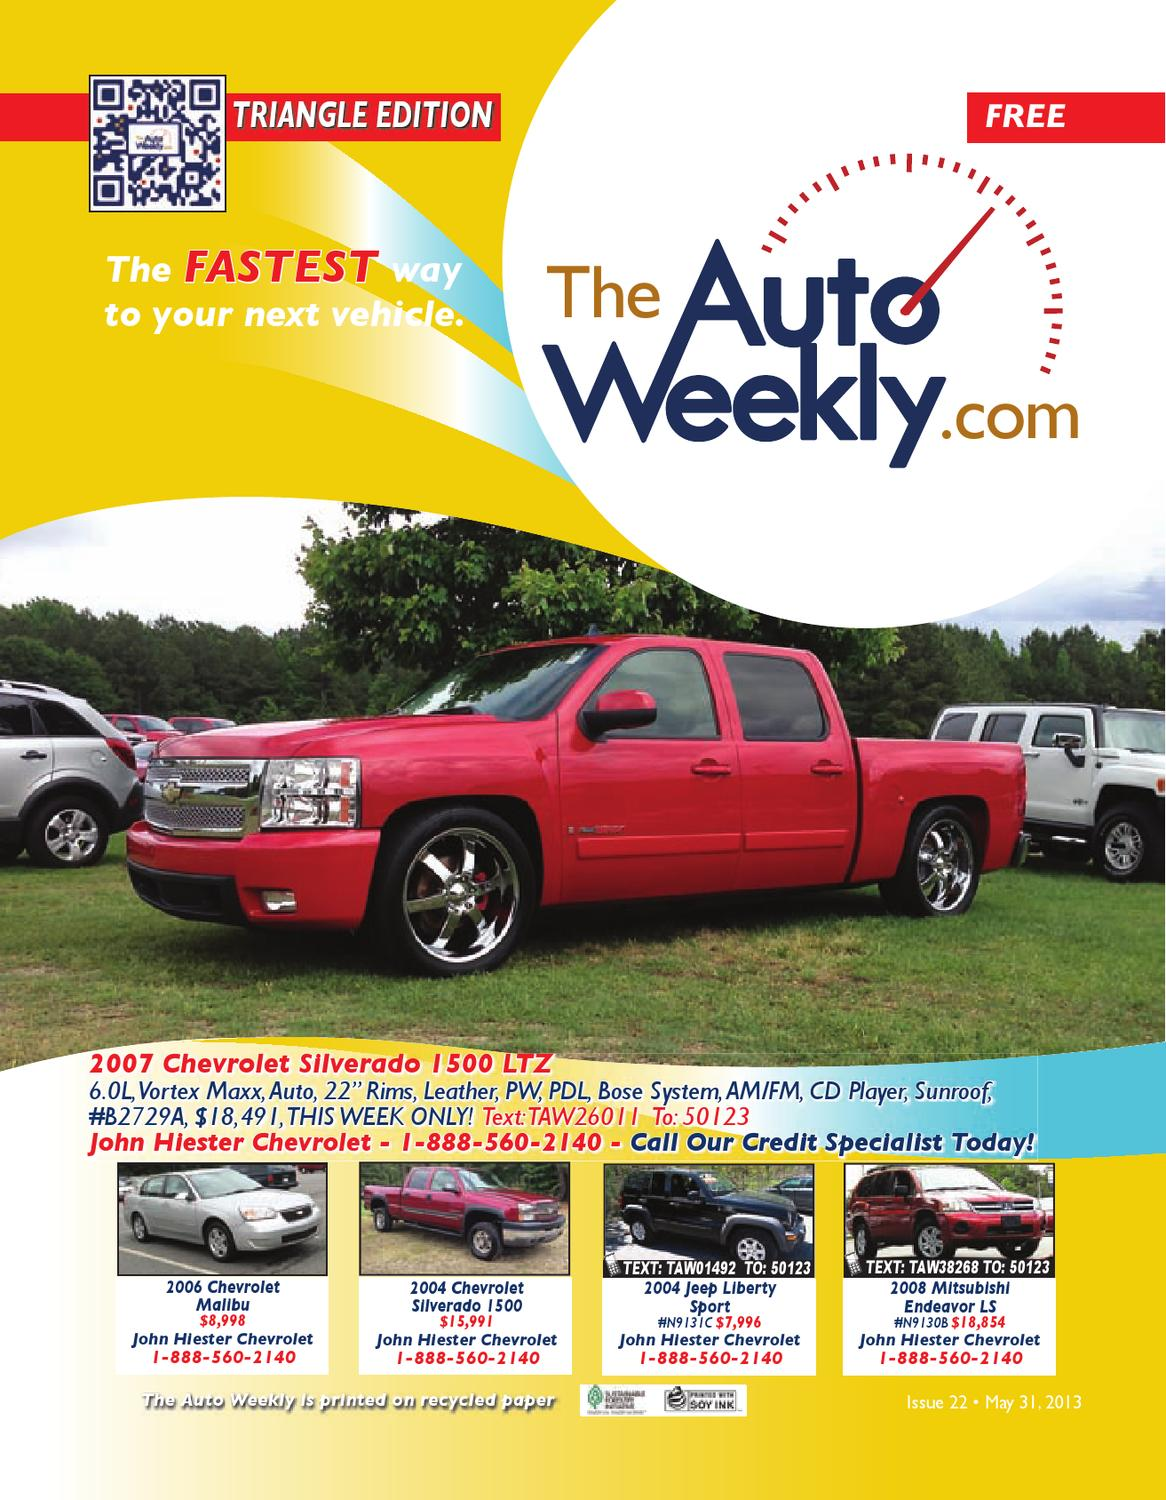 Issue 1322a Triangle Edition The Auto Weekly by The Auto ...